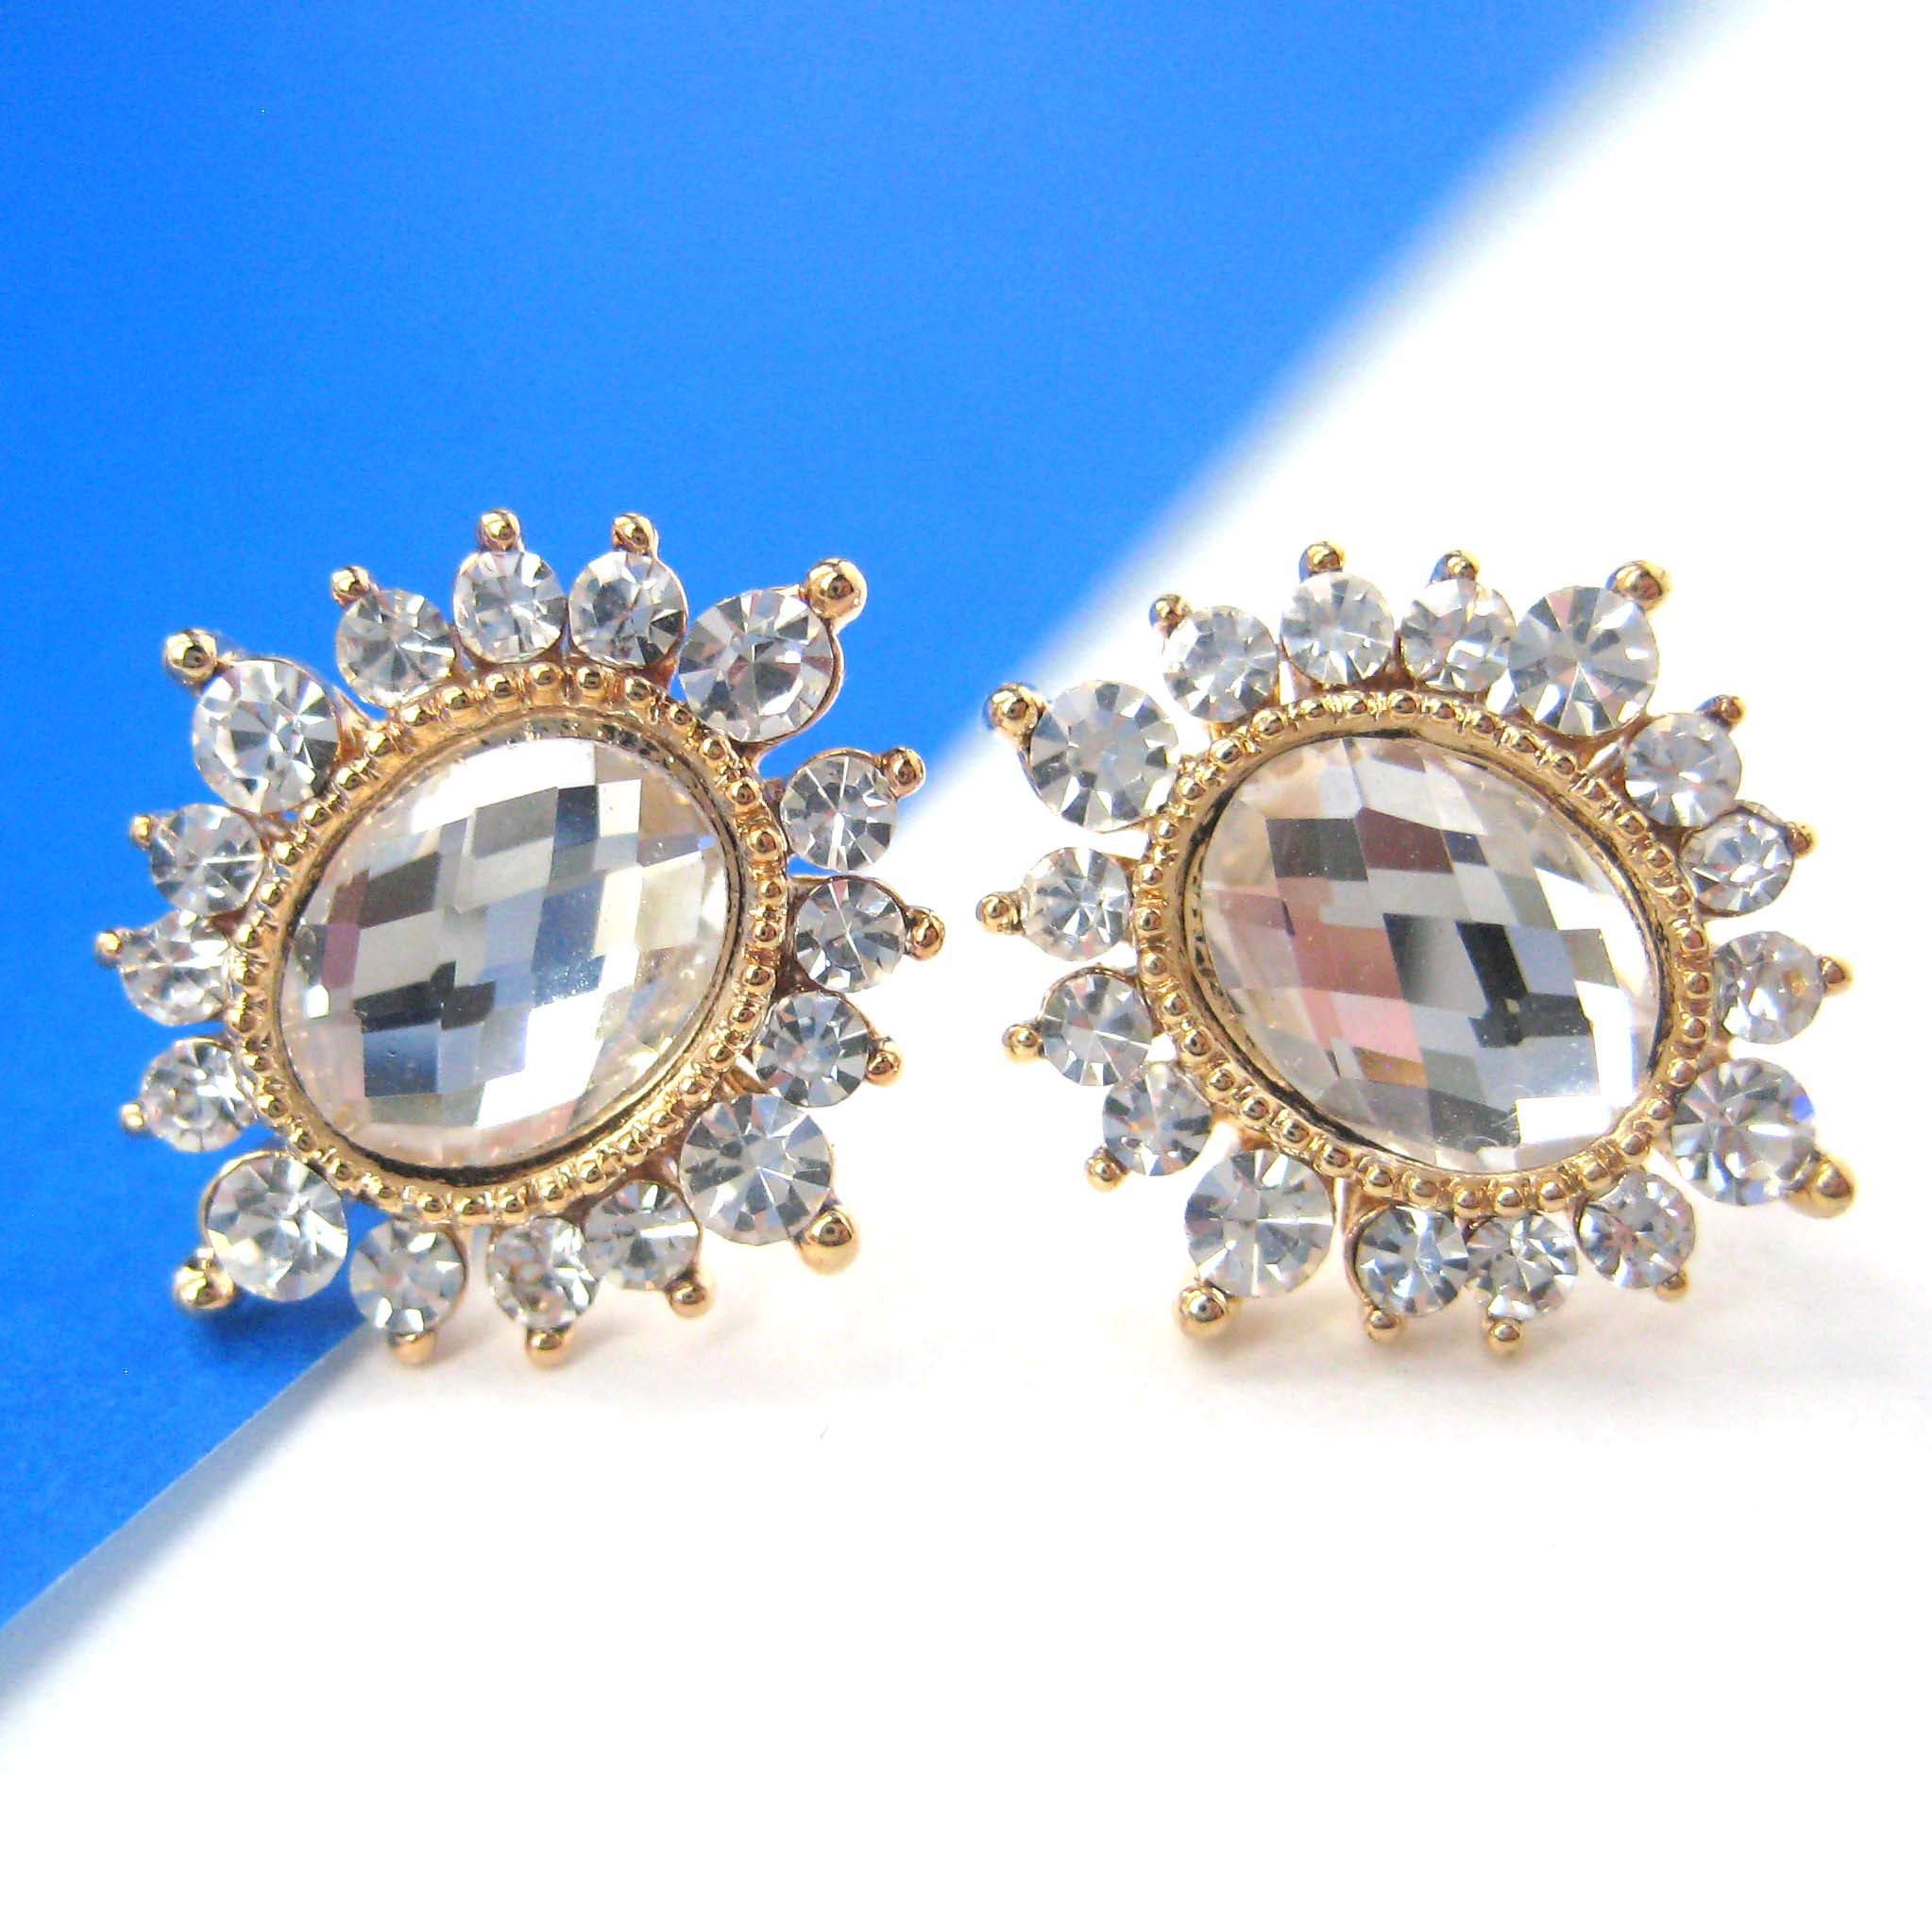 Tiny White Snowflake Stud Earrings In Gold With